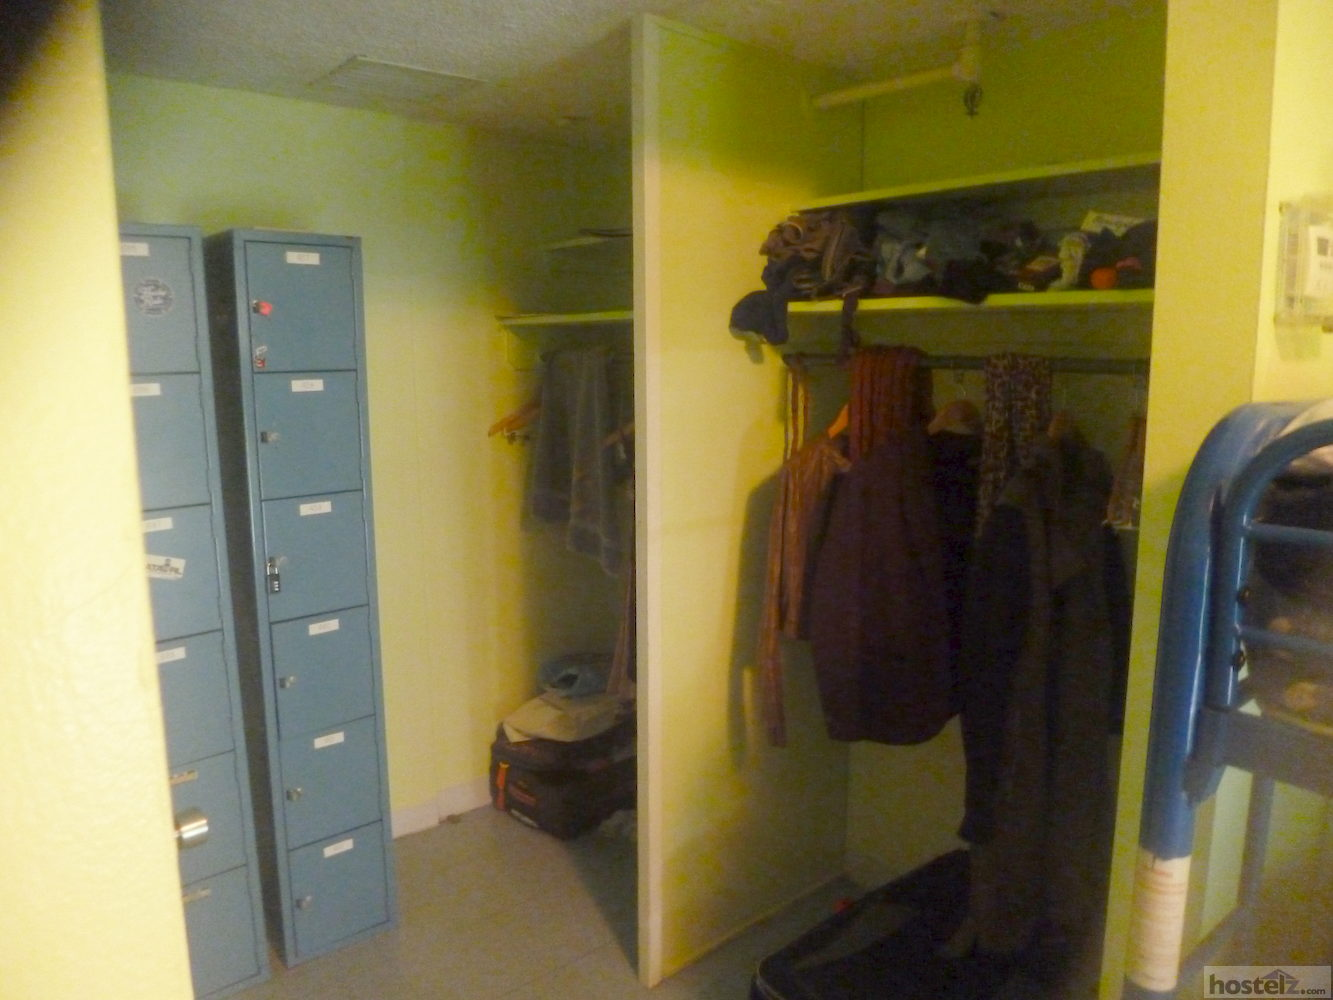 Storage in dorm